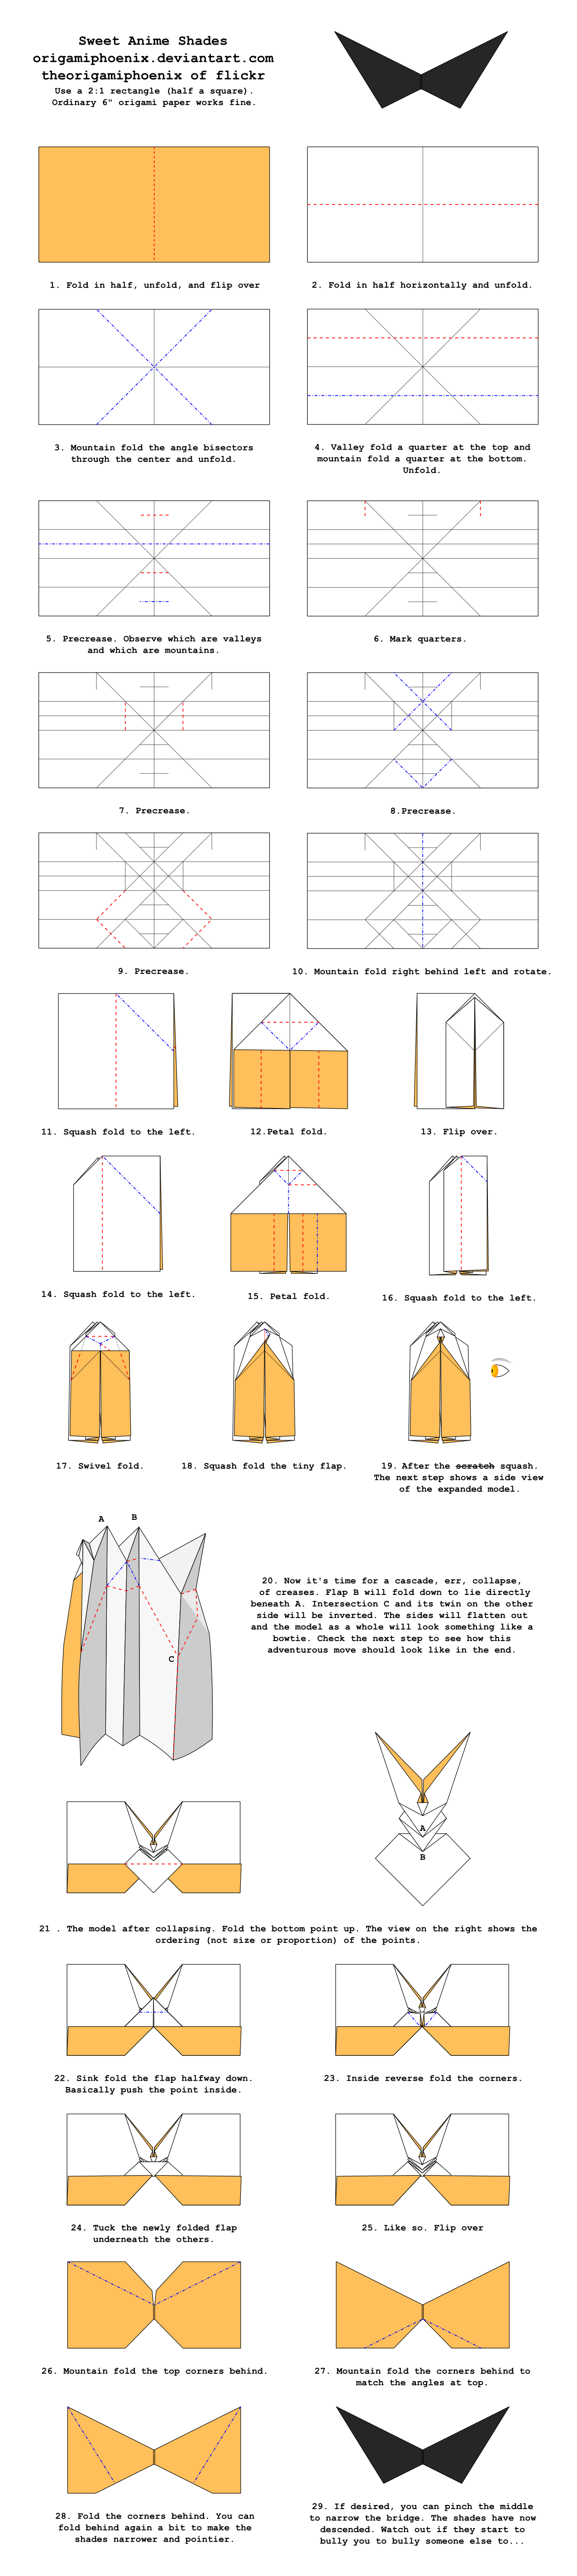 origami sweet anime shades diagrams by origamiphoenix on deviantart rh origamiphoenix deviantart com BARF Jeremy Shafer Jeremy Shafer Easy Flasher